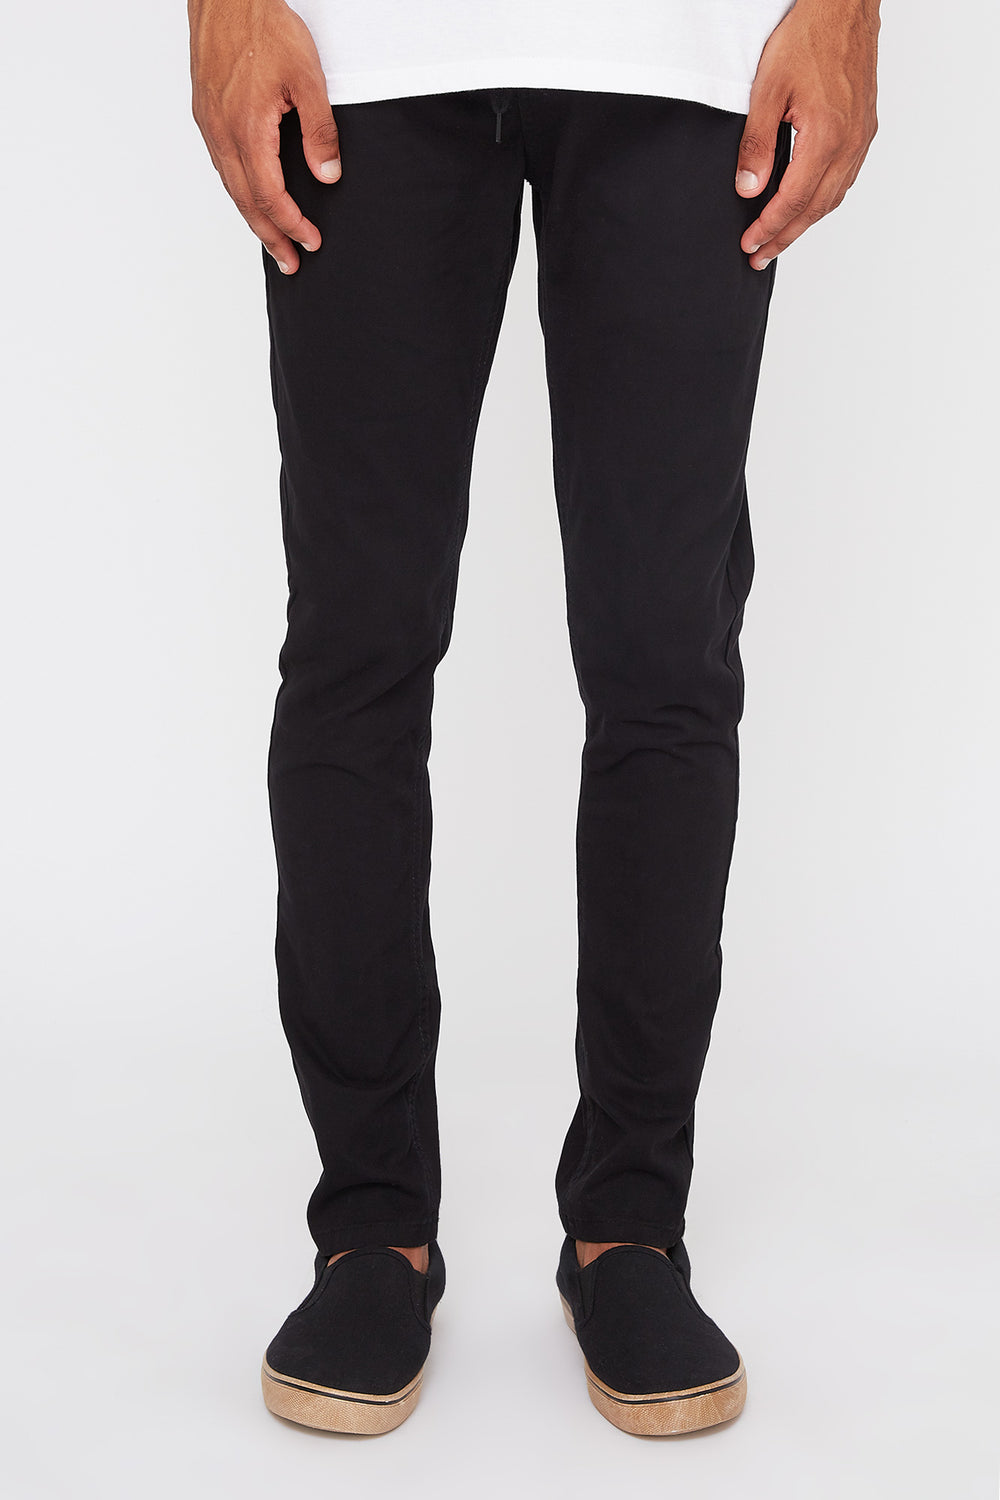 Chinos West49 Homme Noir